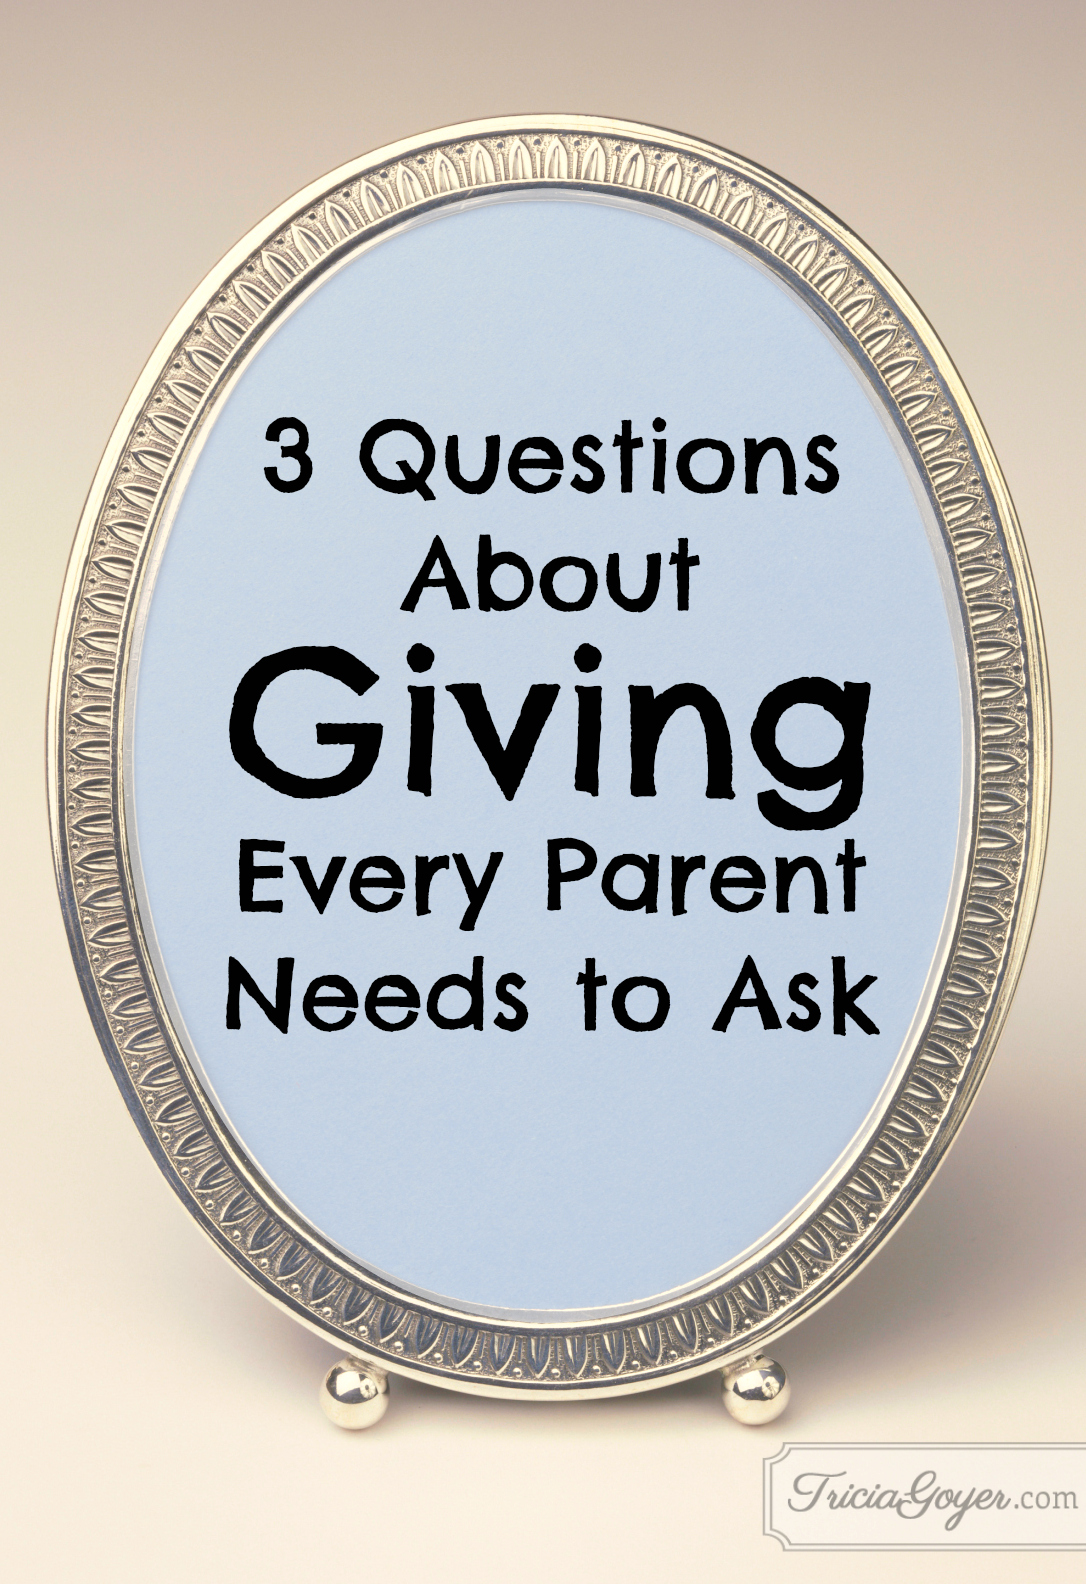 3 Questions About Giving Every Parent Needs to Ask - TriciaGoyer.com